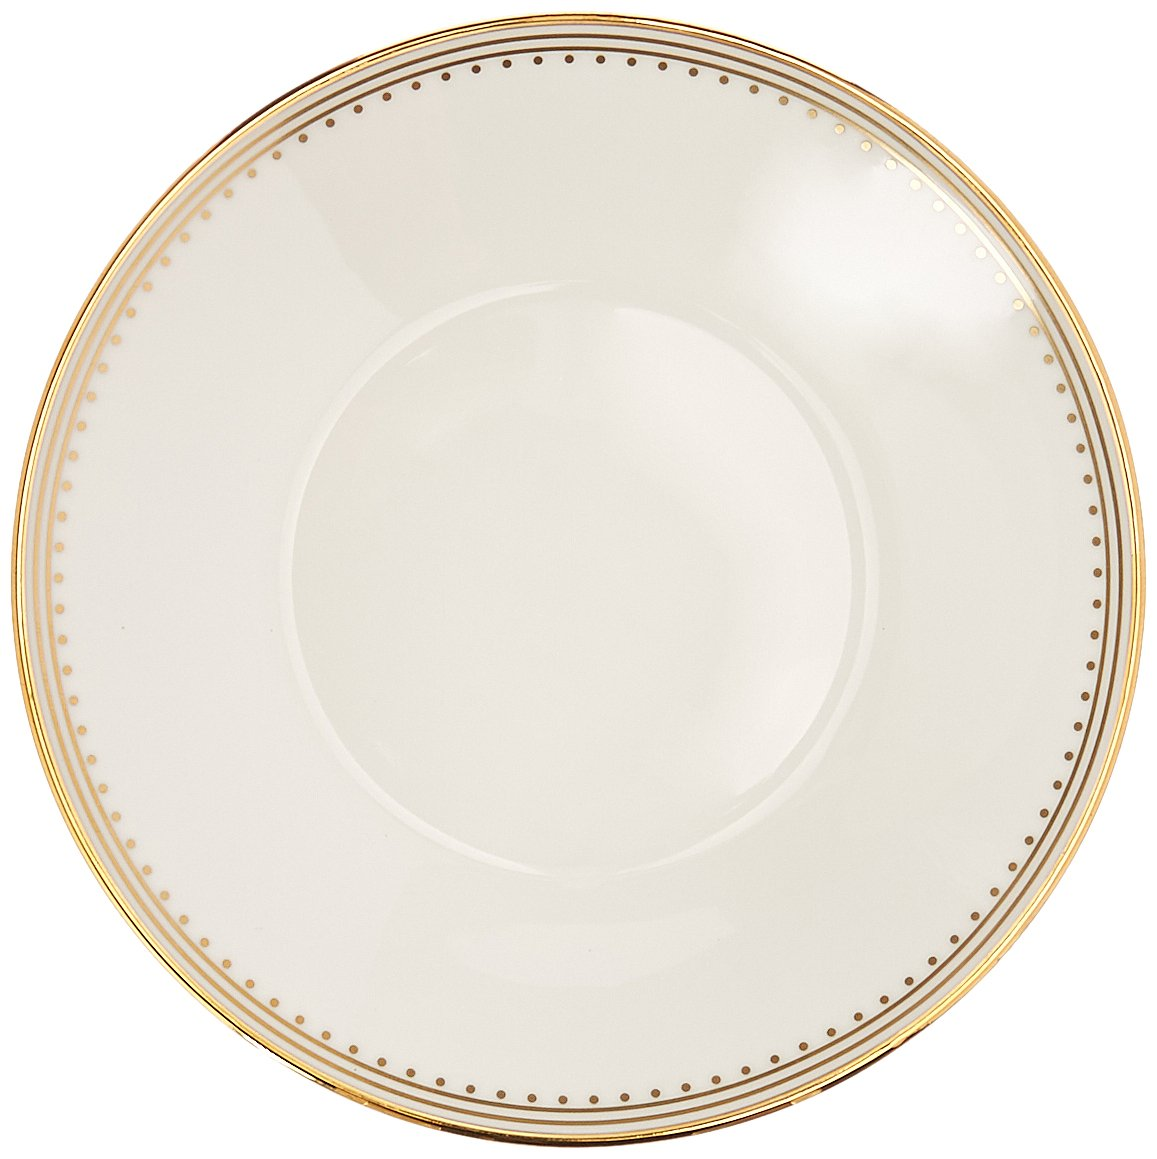 Wedgwood Golden Grosgrain Imperial